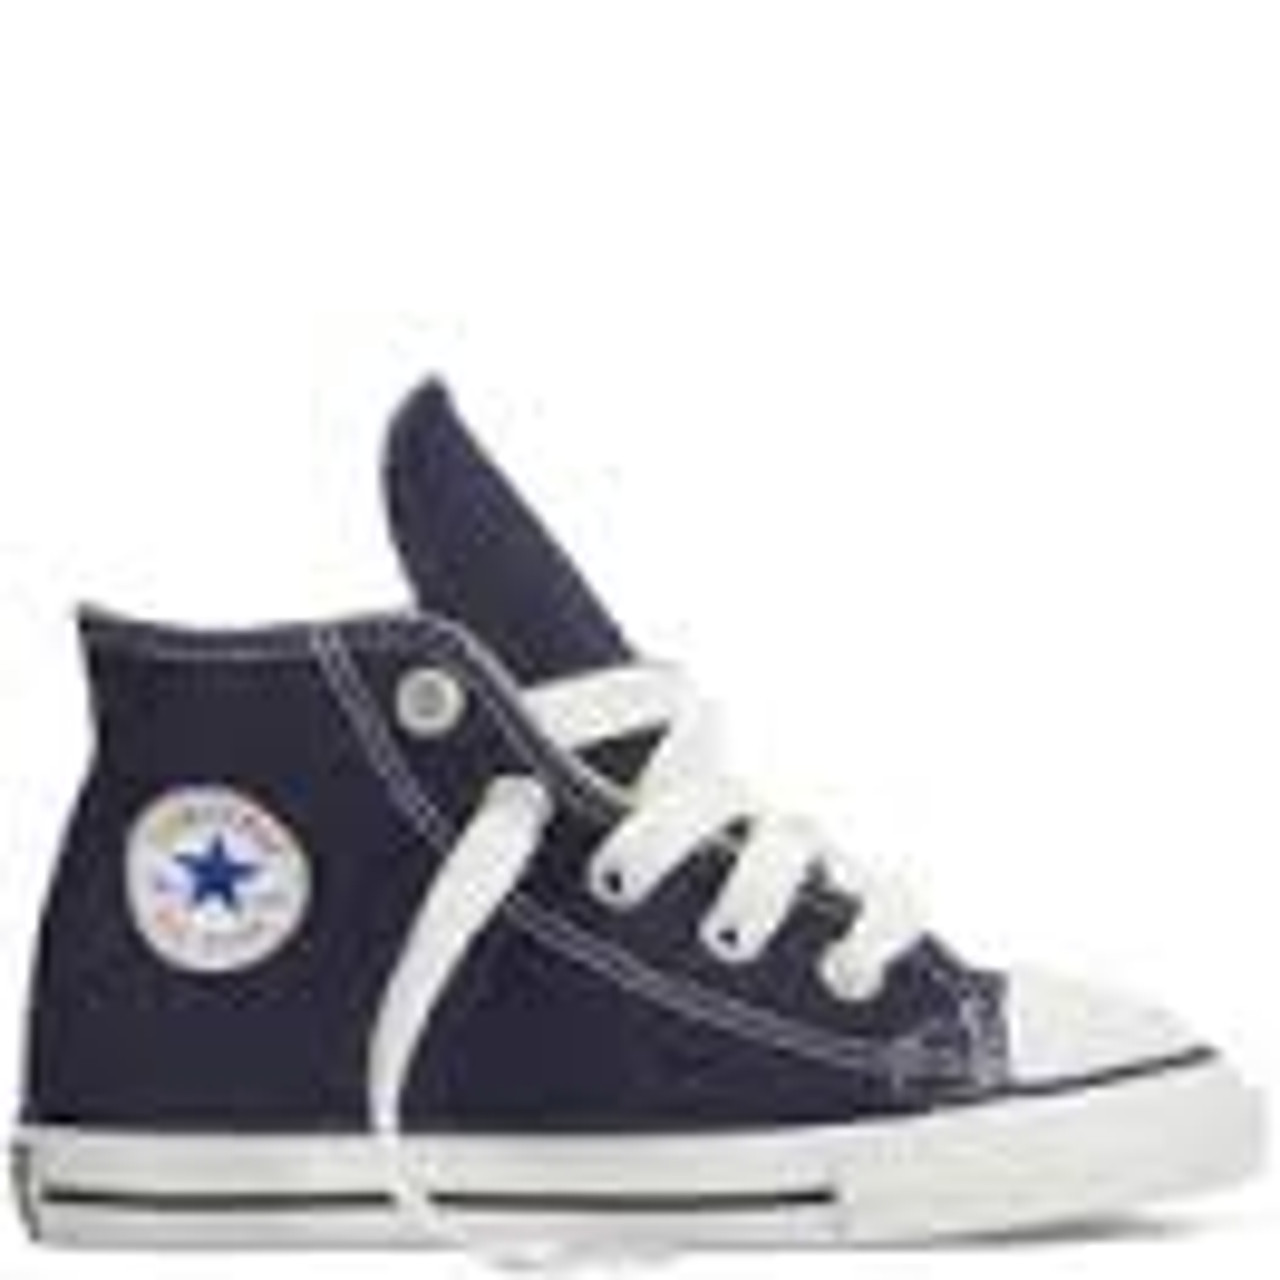 Converse Chuck Taylor Hi Canvas All Star Classic Colors Tdlr (1-3.5 yrs.)